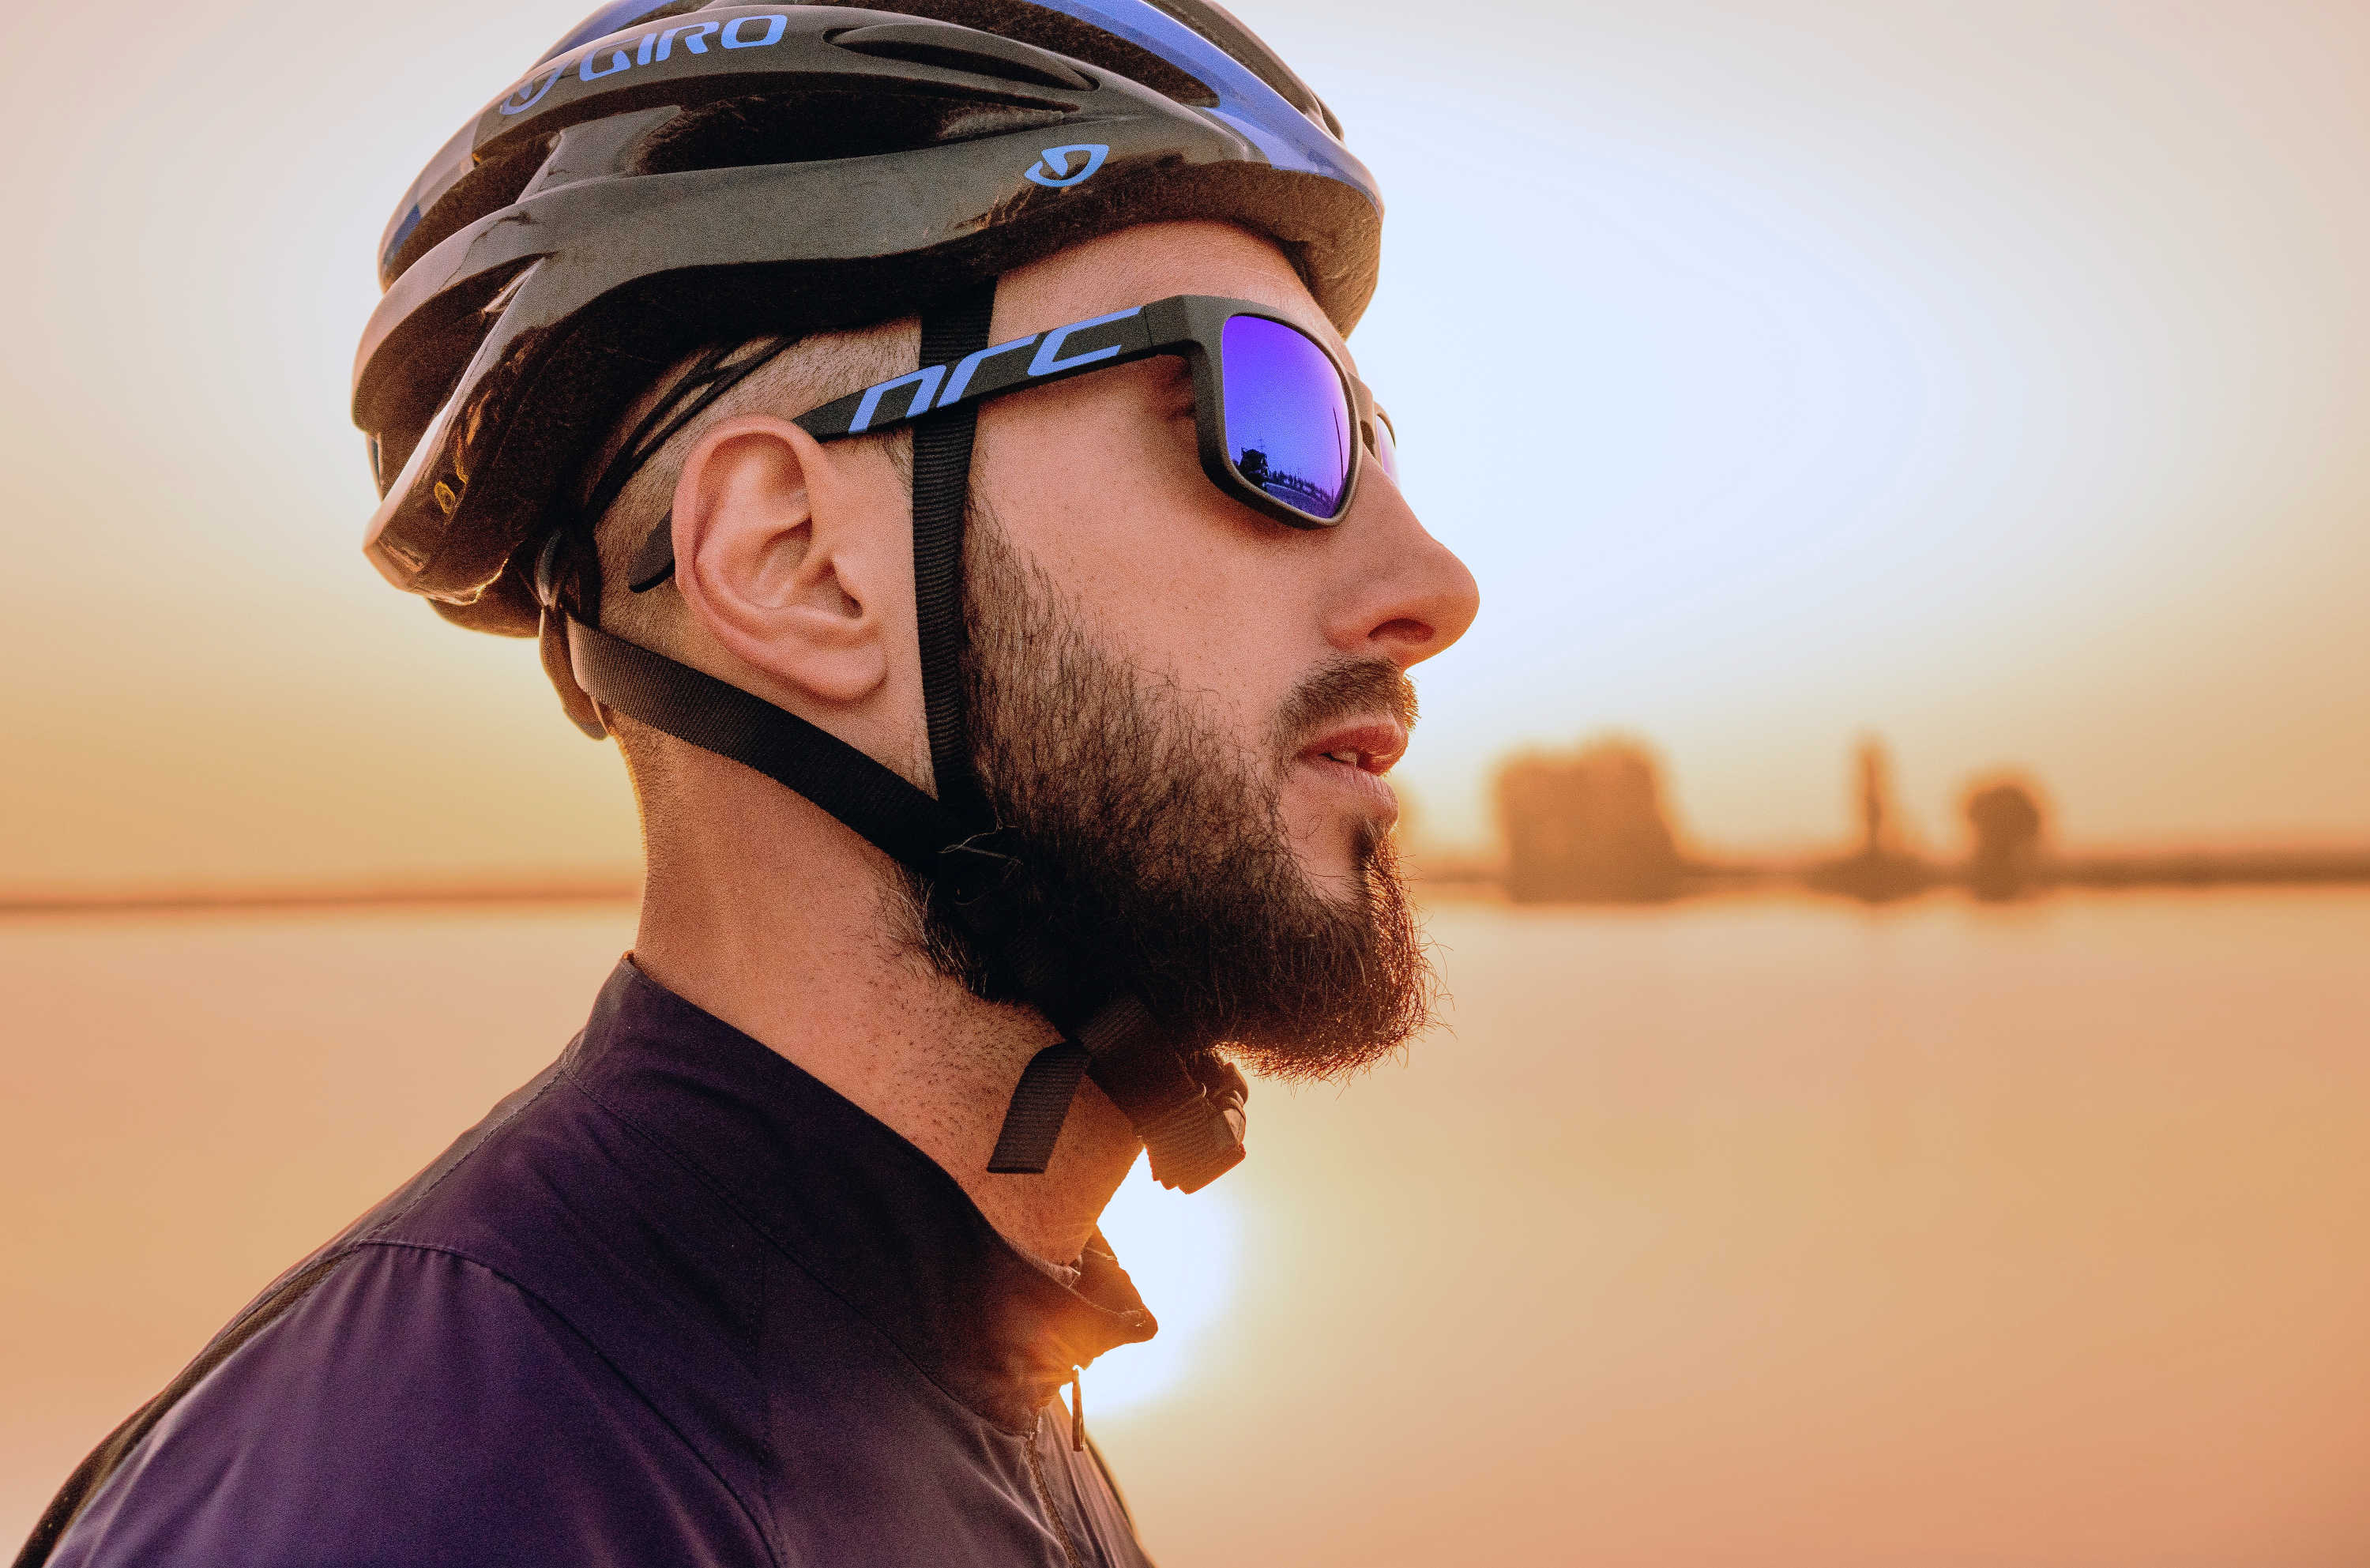 A man wears a cycling helmet and sunglasses.